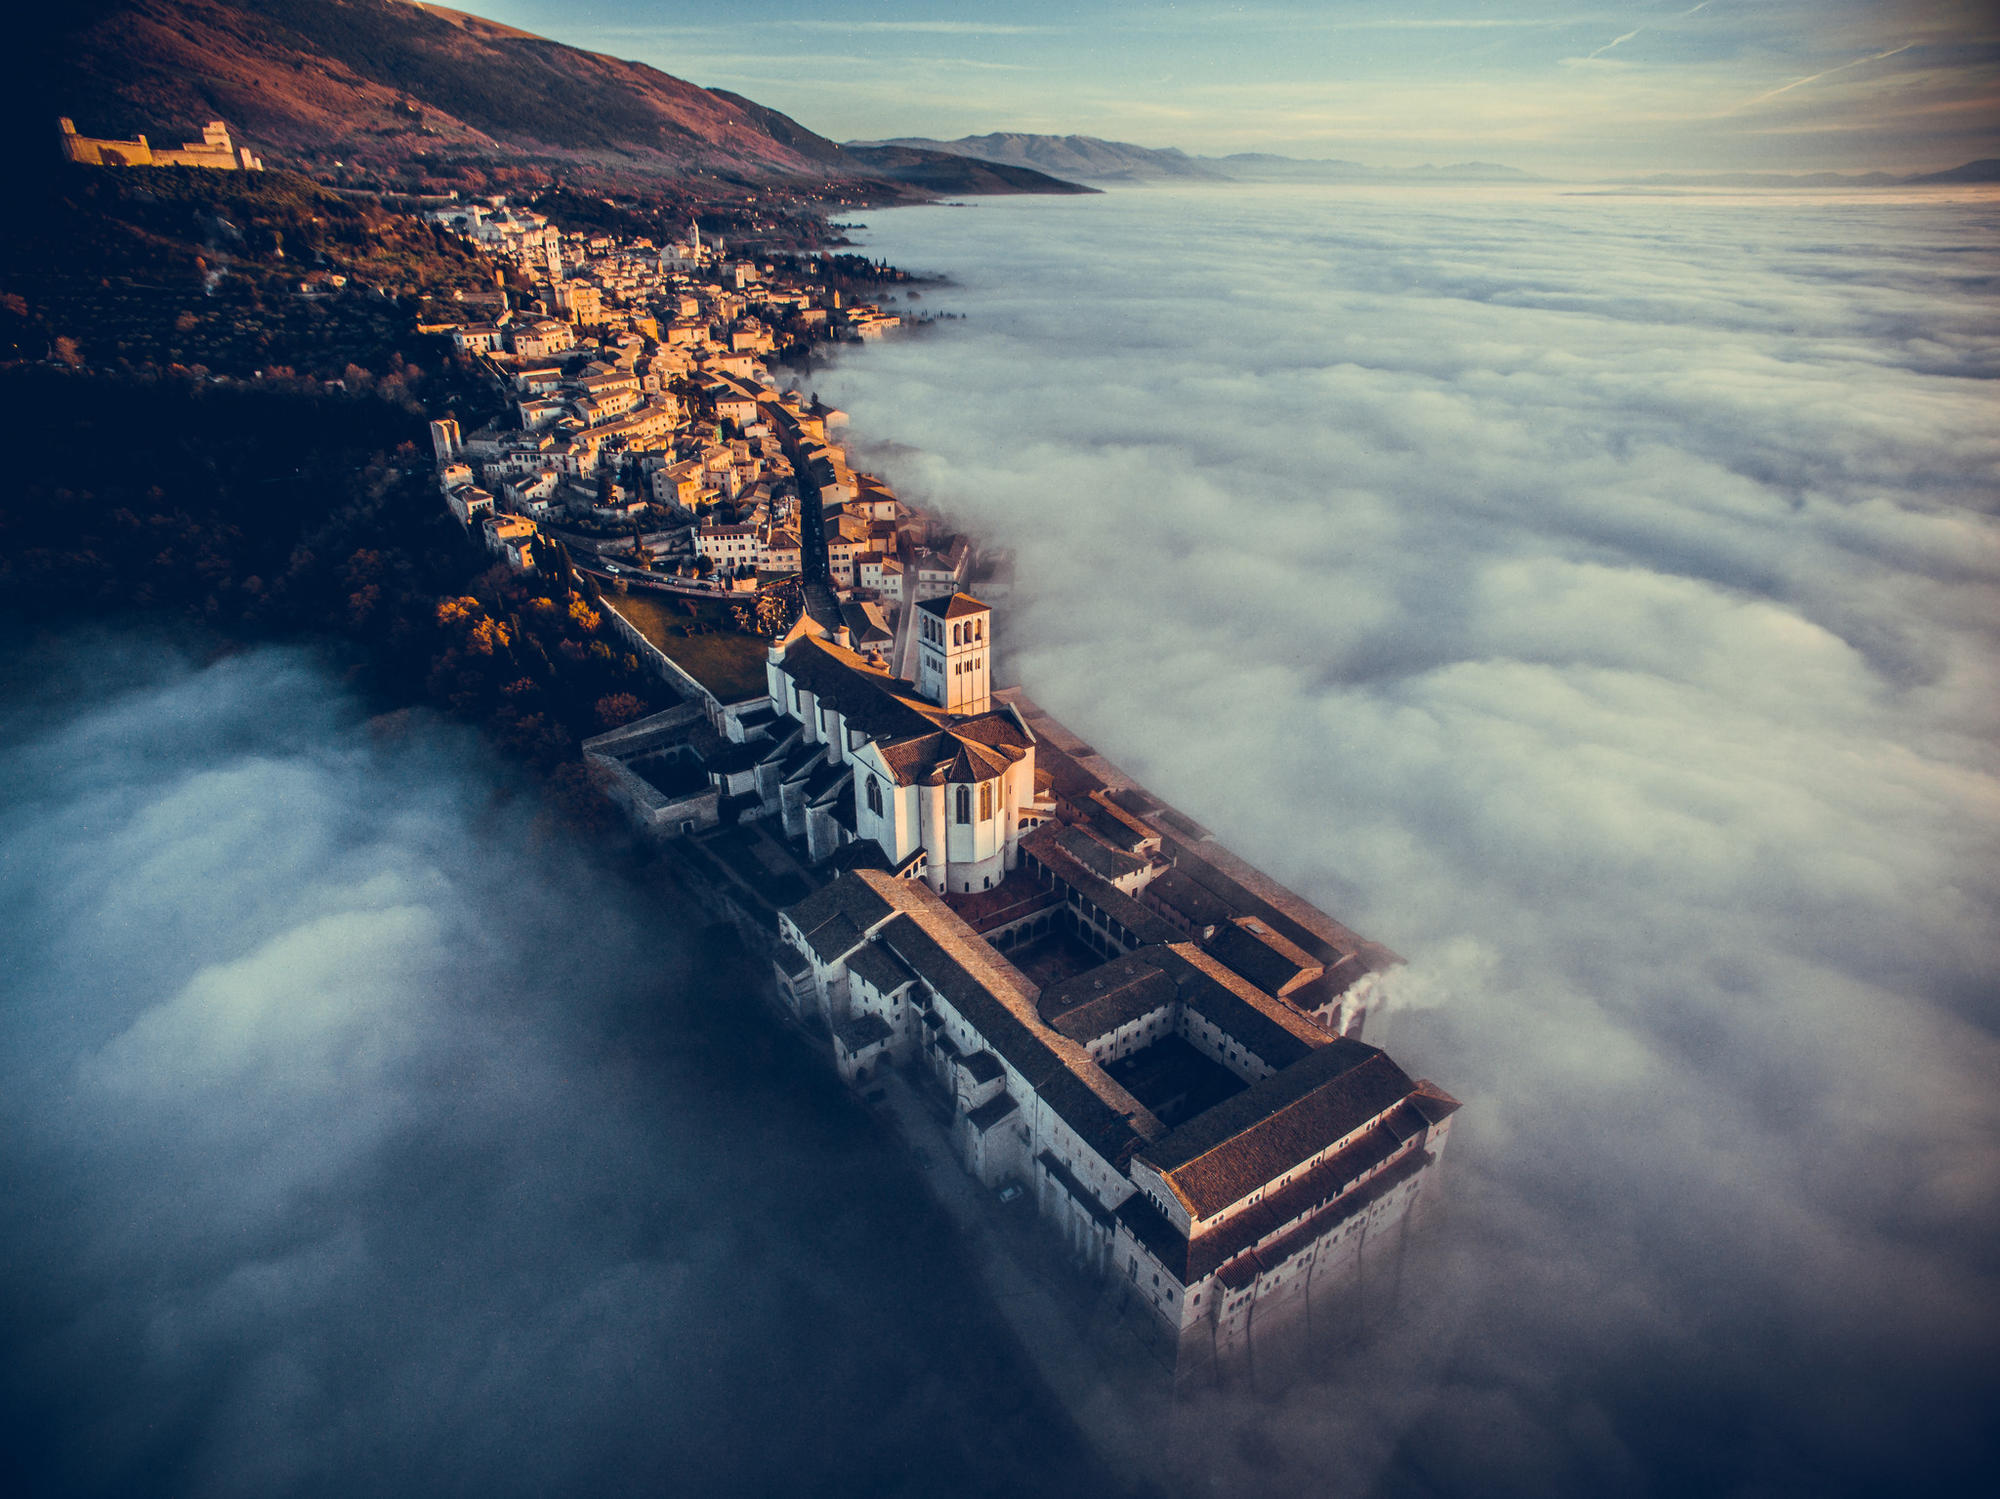 An image of the Basilica of St. Francis of Assisi in Italy took first place in the travel category.